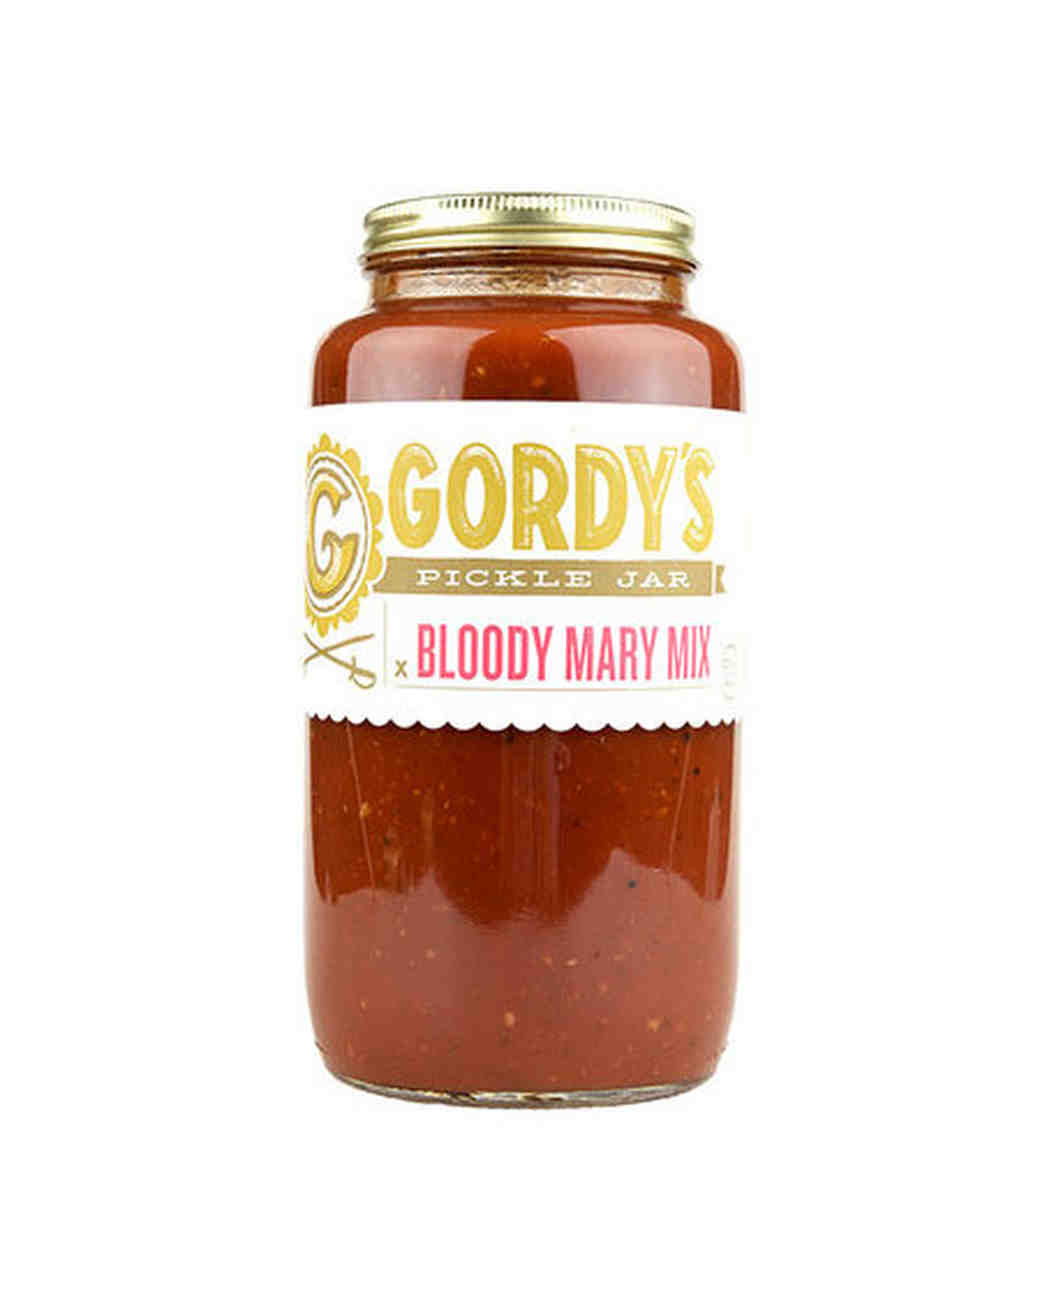 group-bachelorette-party-gifts-bloody-mary-mix-0316.jpg